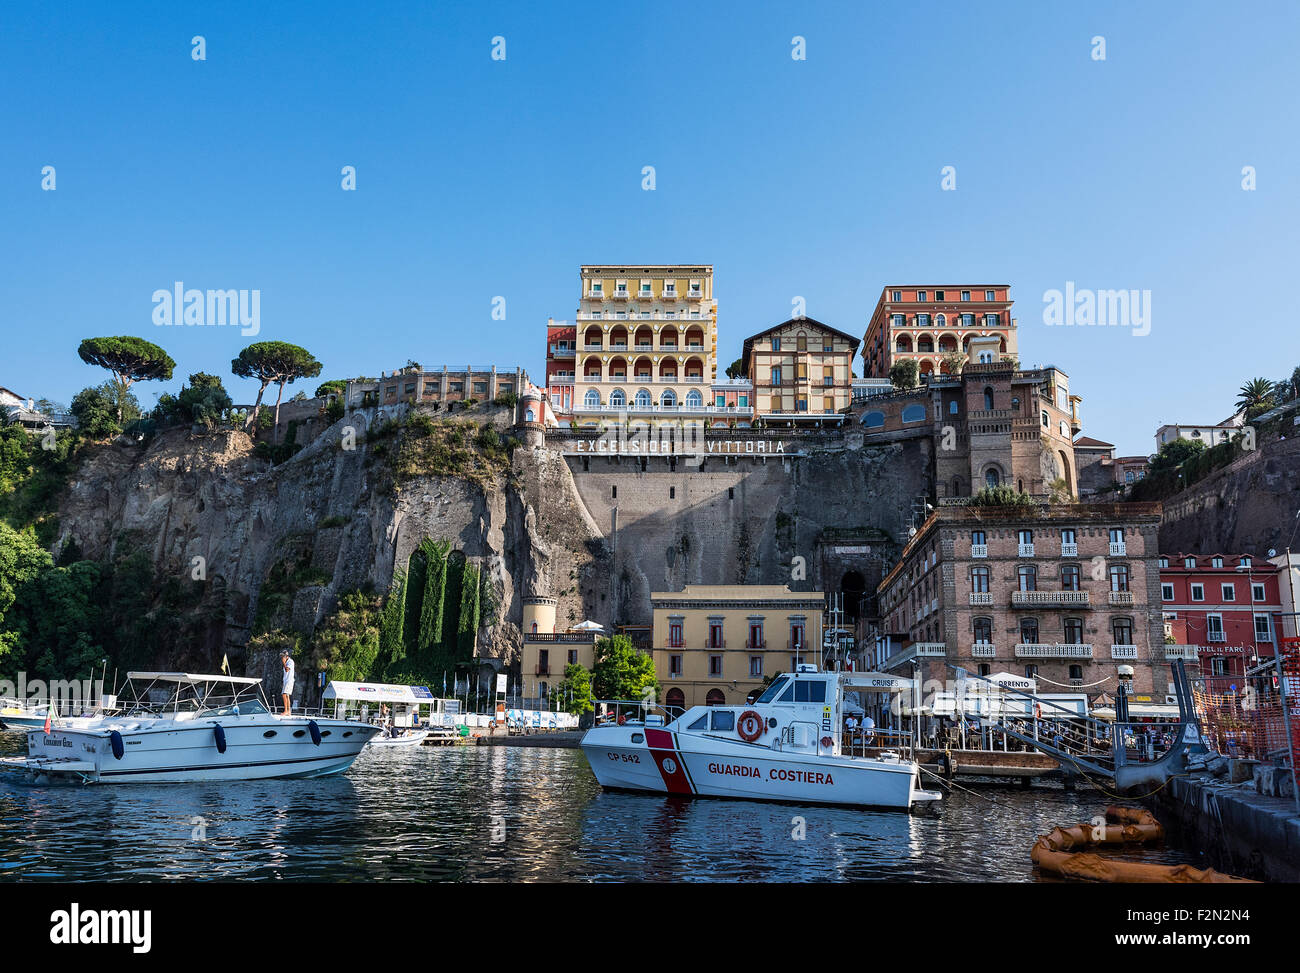 Town of Sorrento as seen from the water, Naples, Italy - Stock Image